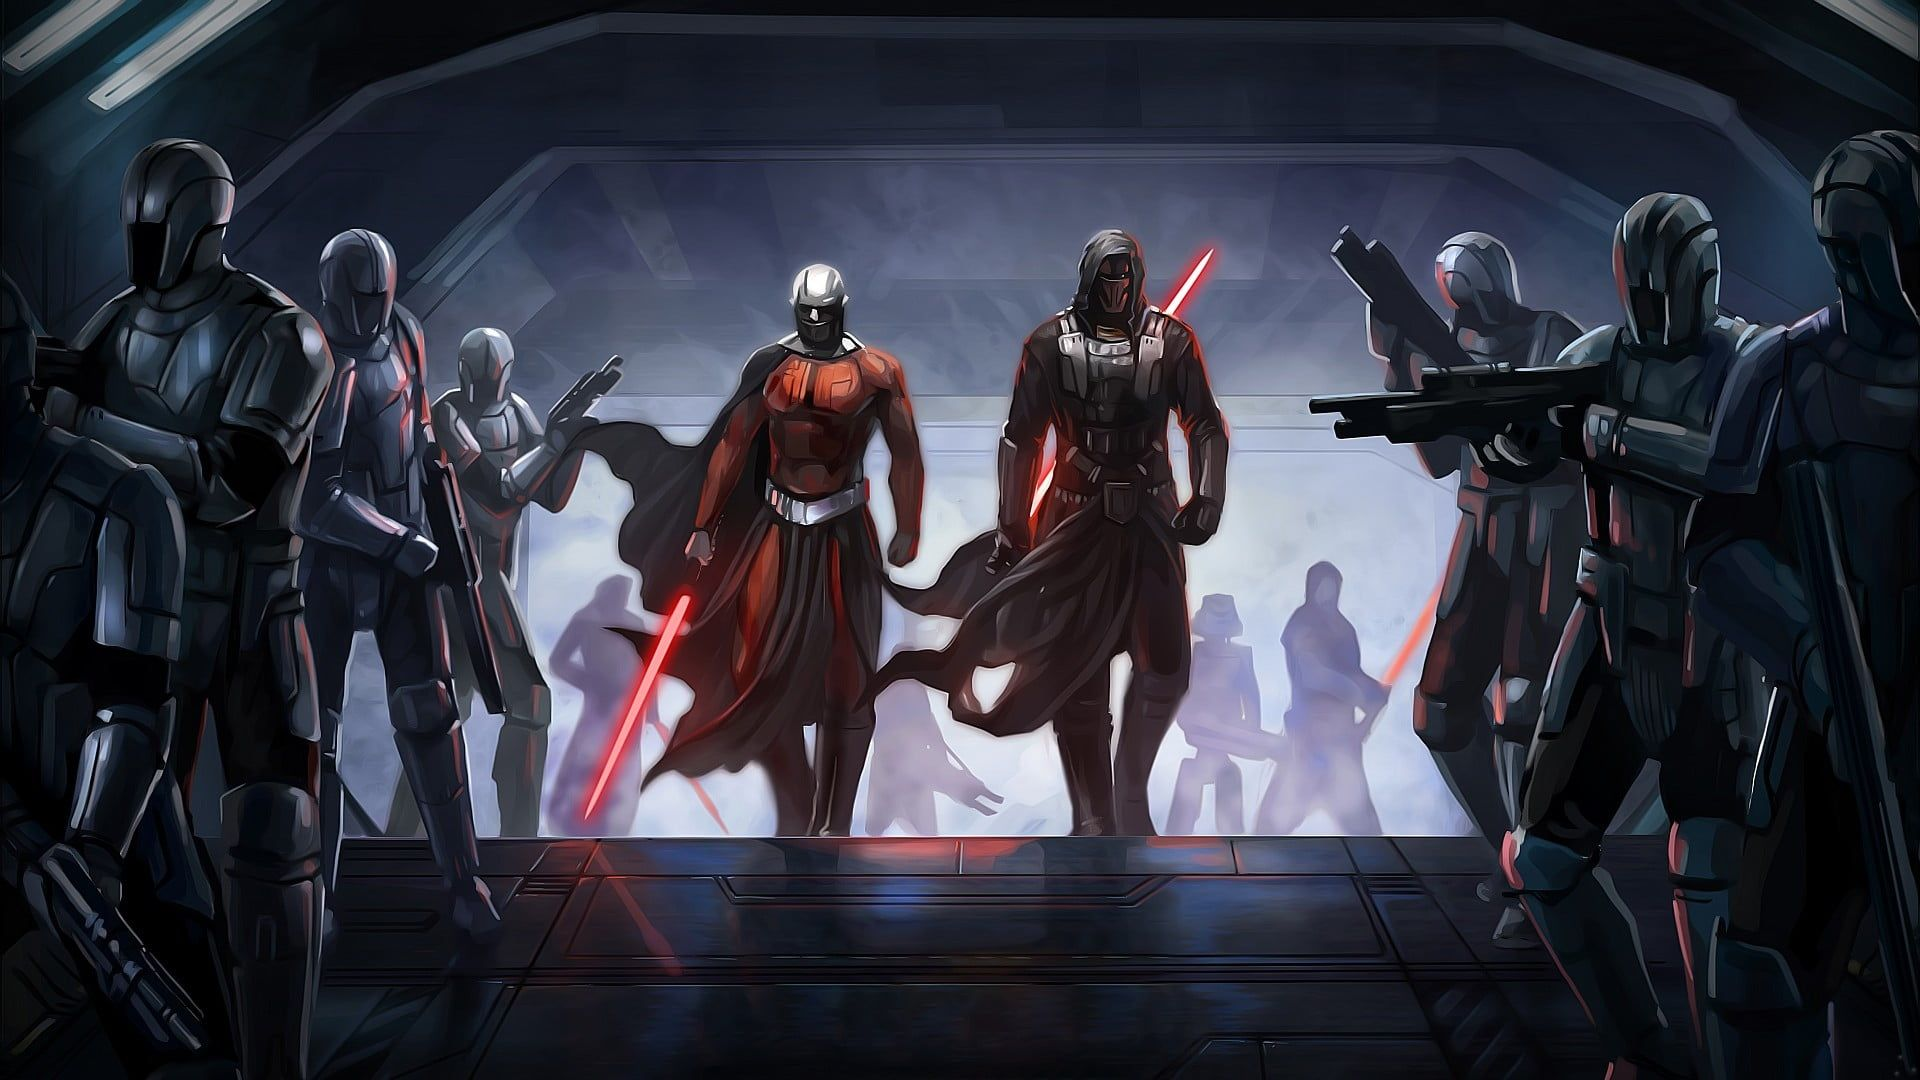 Rpg Wallpaper Revan Knights Of The Old Republic Star Wars